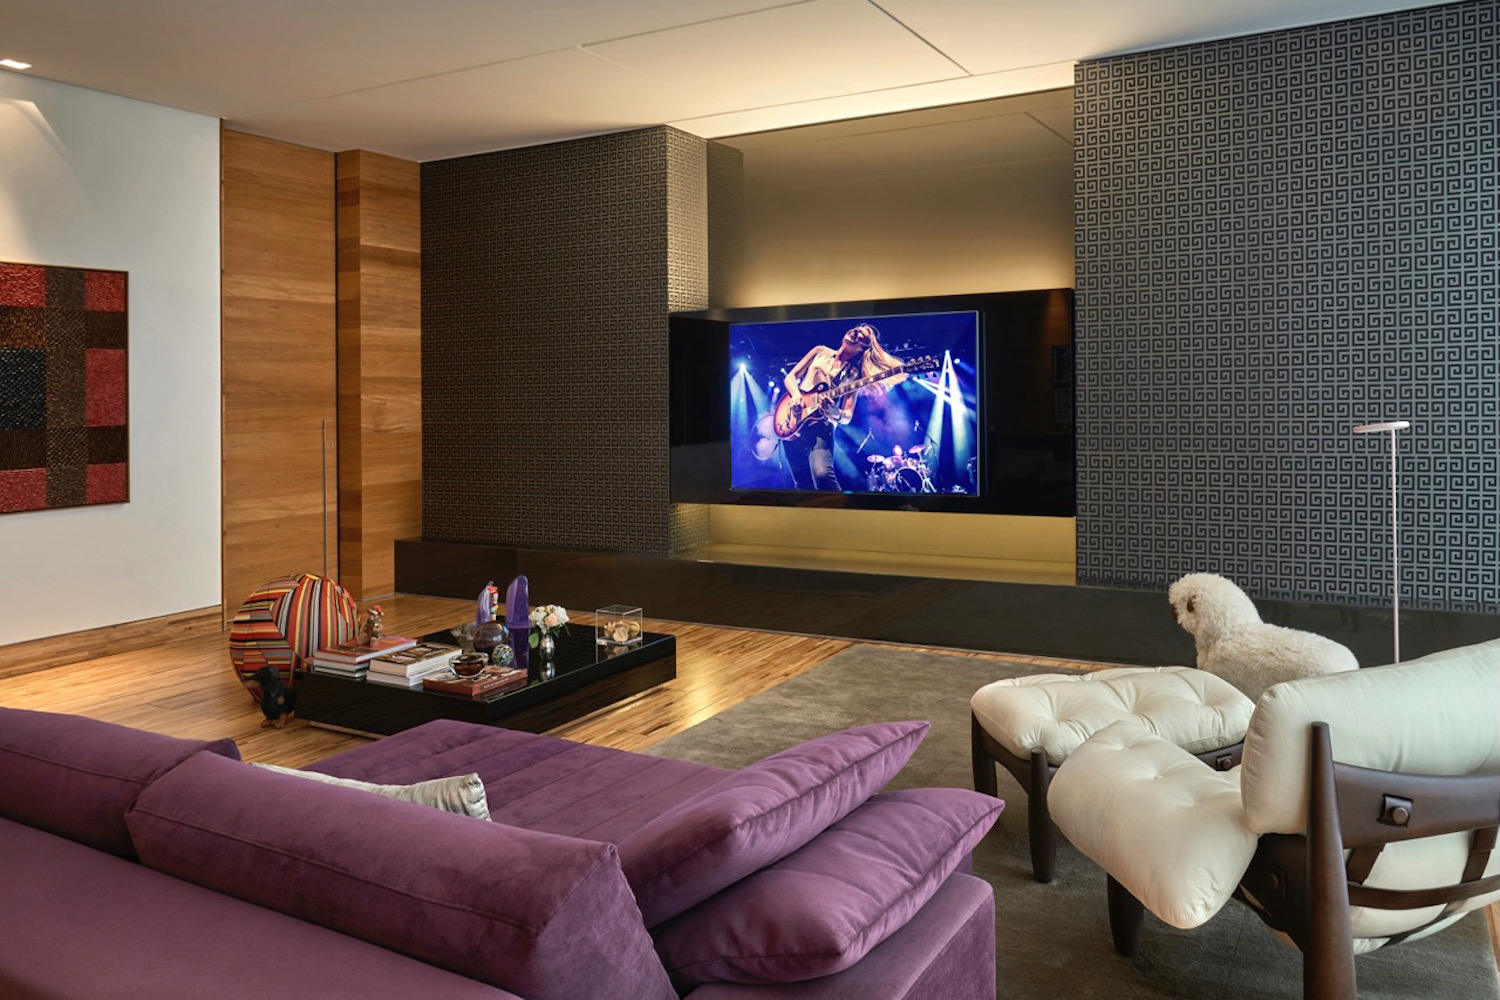 This ultra luxurious home in Belo Horizonte, Brazil had two primary requirements: The quintessence of advanced audio and video technology, and it was to be housed in the most sumptuous and acoustically pristine environment imaginable. Living Room. WSDG Residential projects.